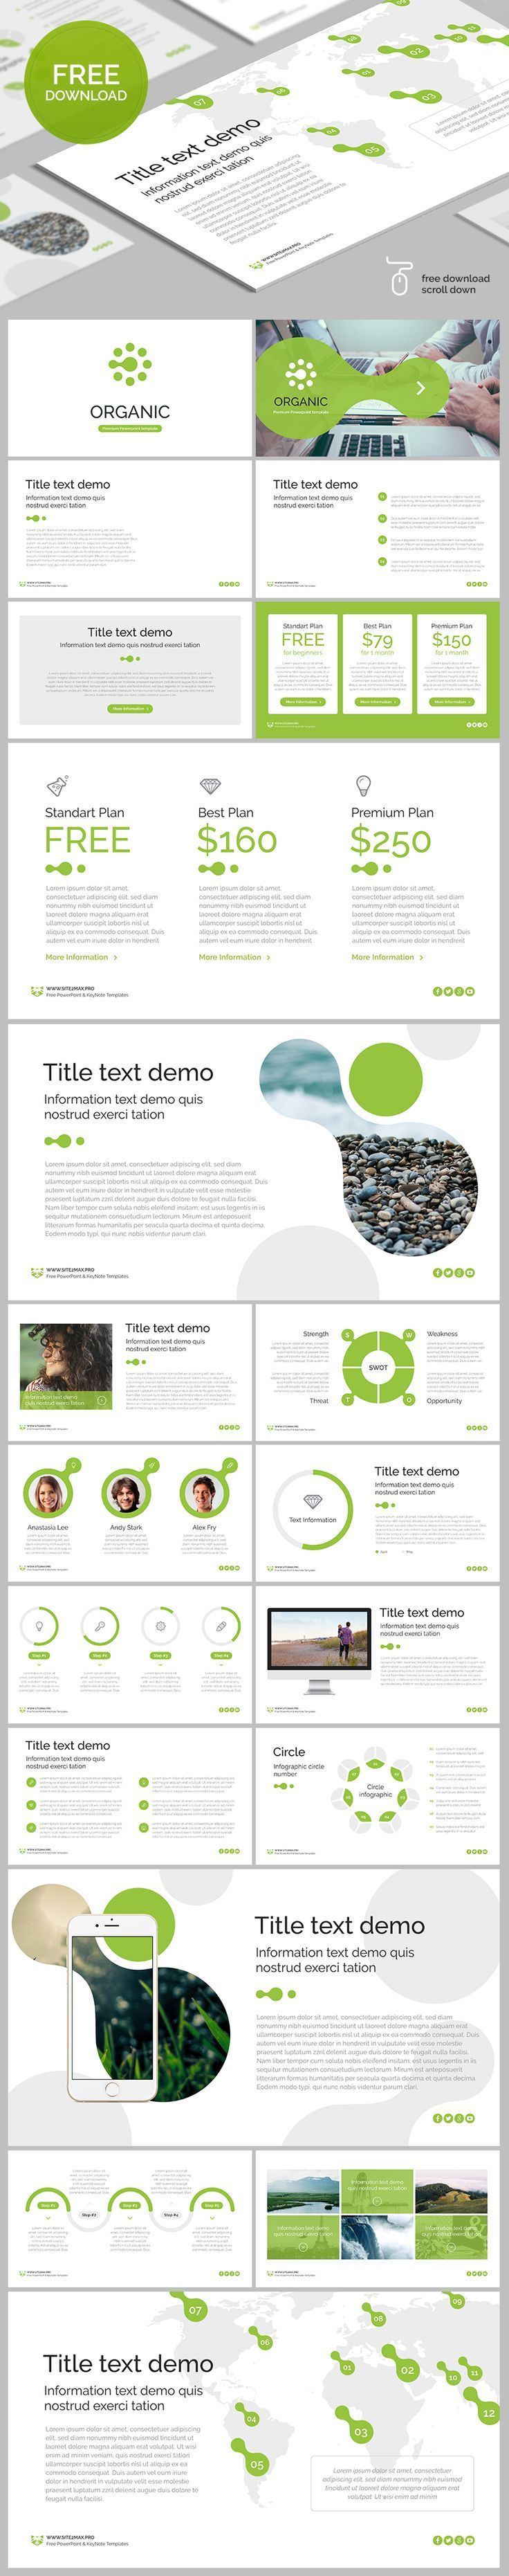 """free powerpoint template download link > 20 unique slides, """"drag, Powerpoint templates"""